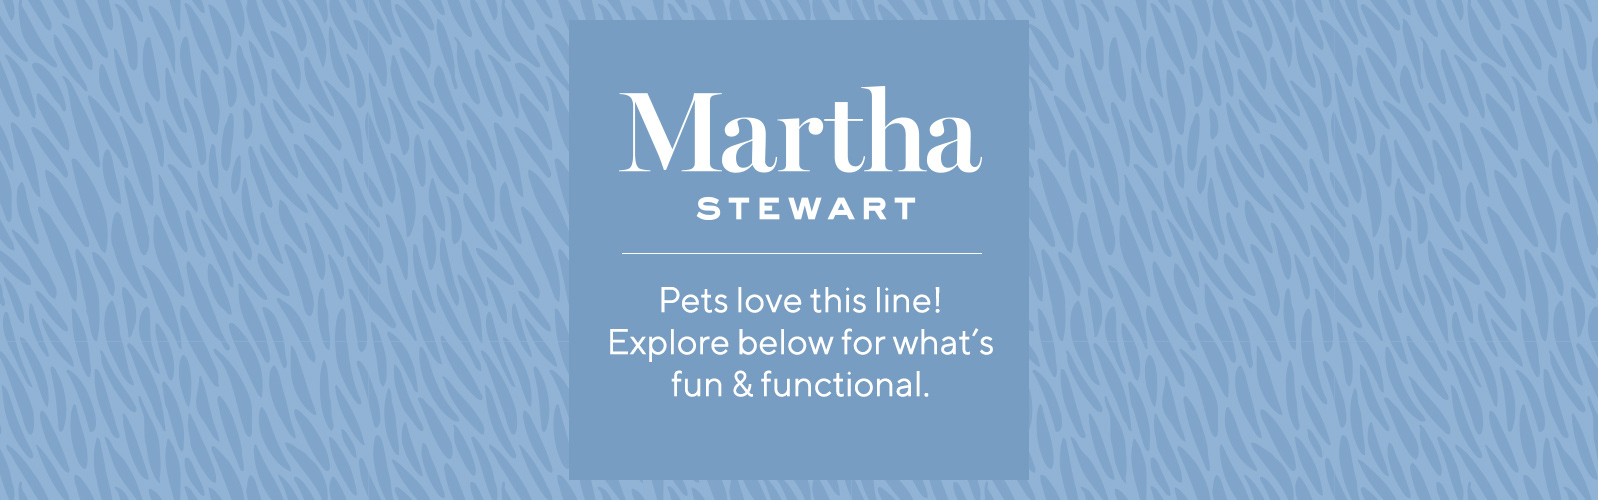 Martha Stewart.  Pets love this line! Explore below for what's fun & functional.